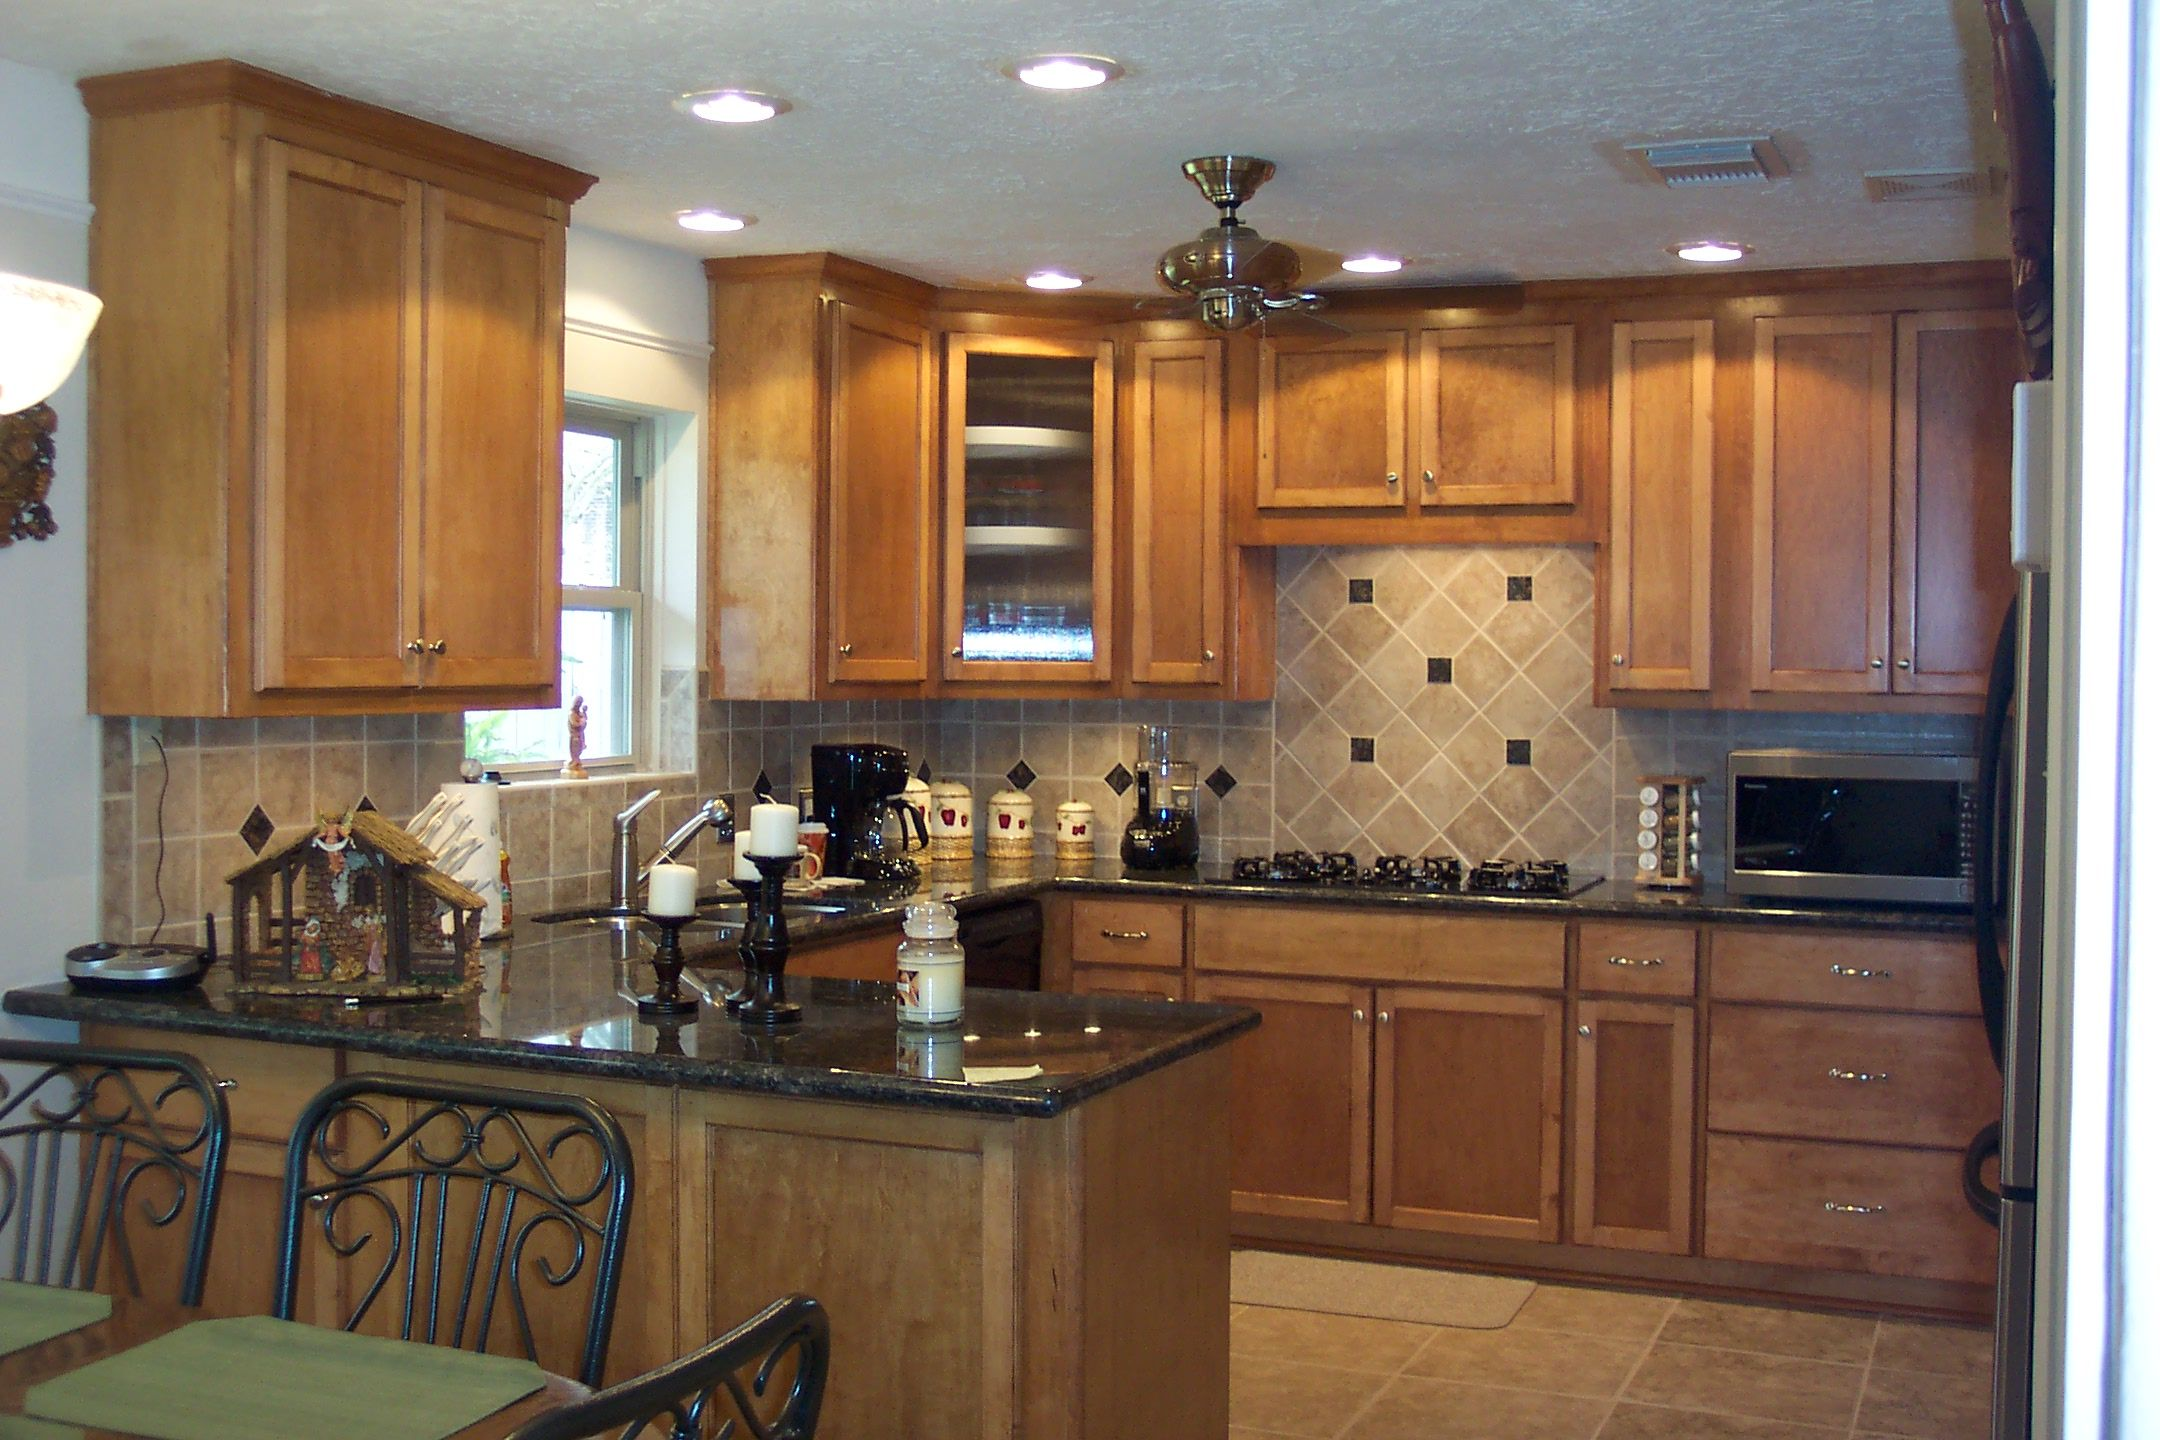 small kitchens on a budget home design ideas kitchen remodeling ideas 2160x1440 on kitchen ideas simple id=49252